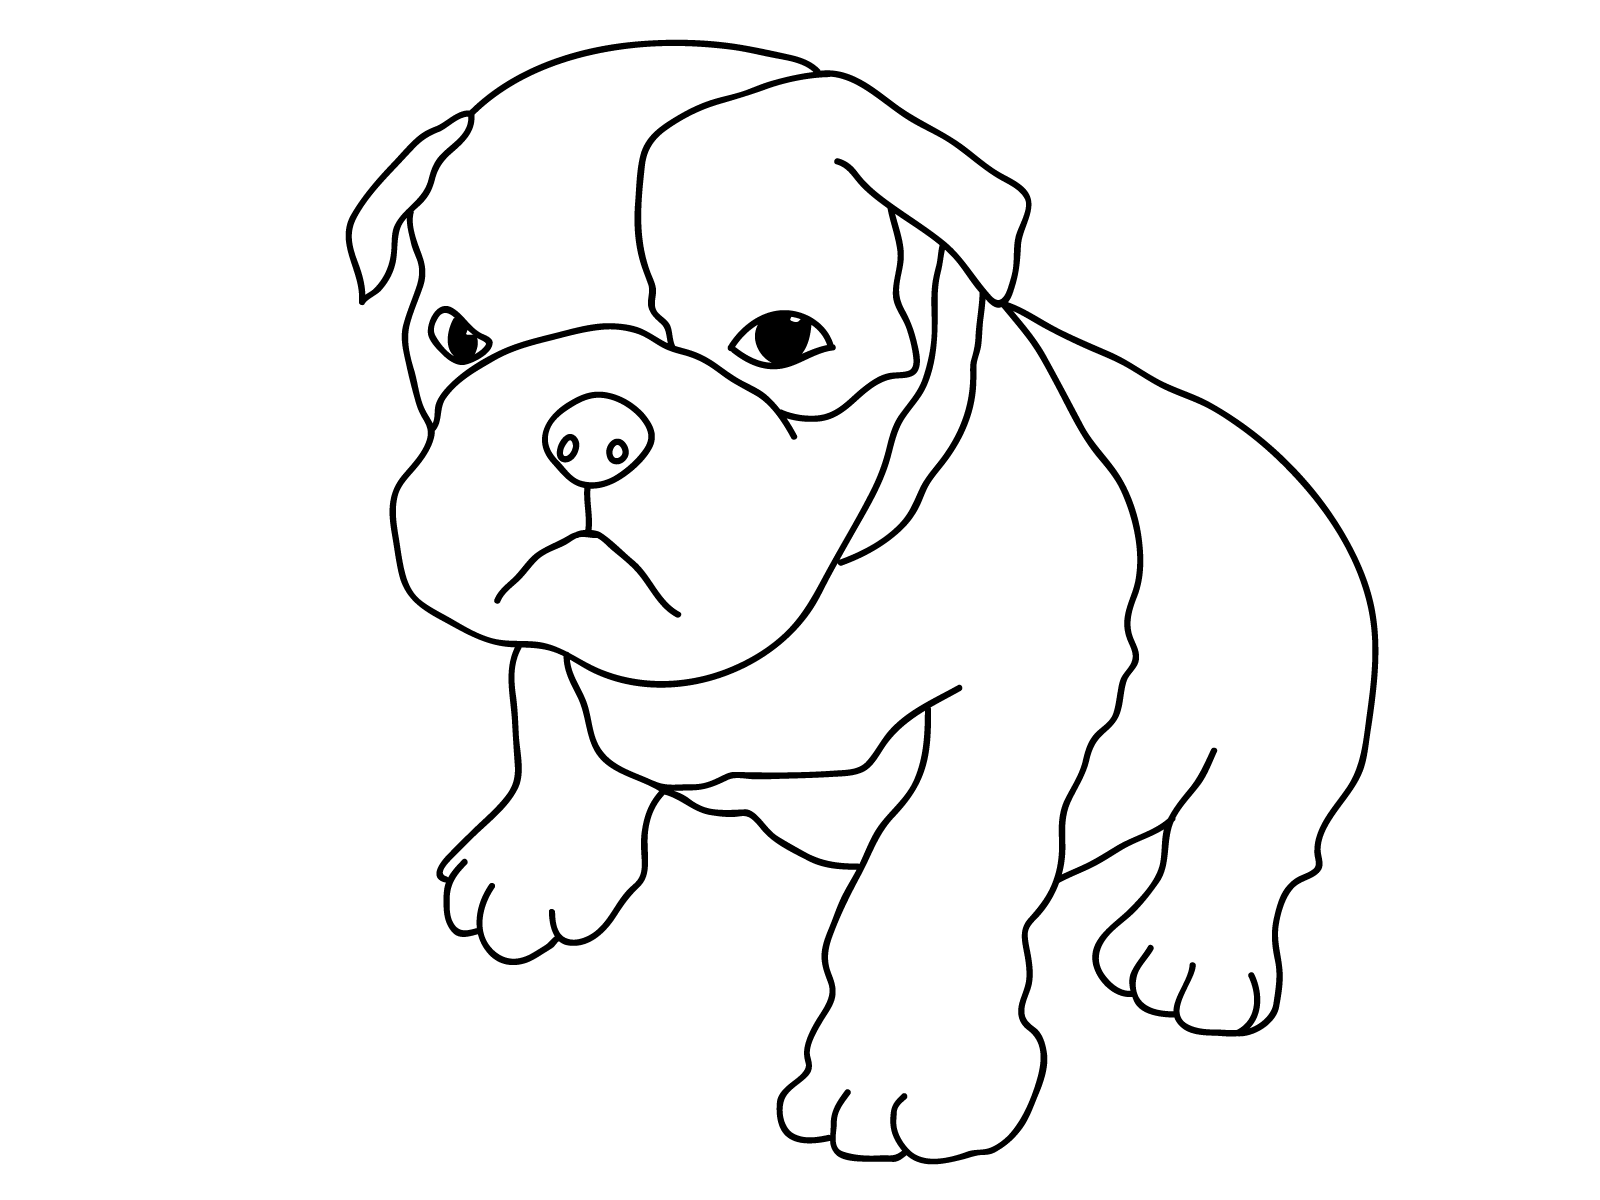 dogs to color free printable dog coloring pages for kids dogs color to 1 1